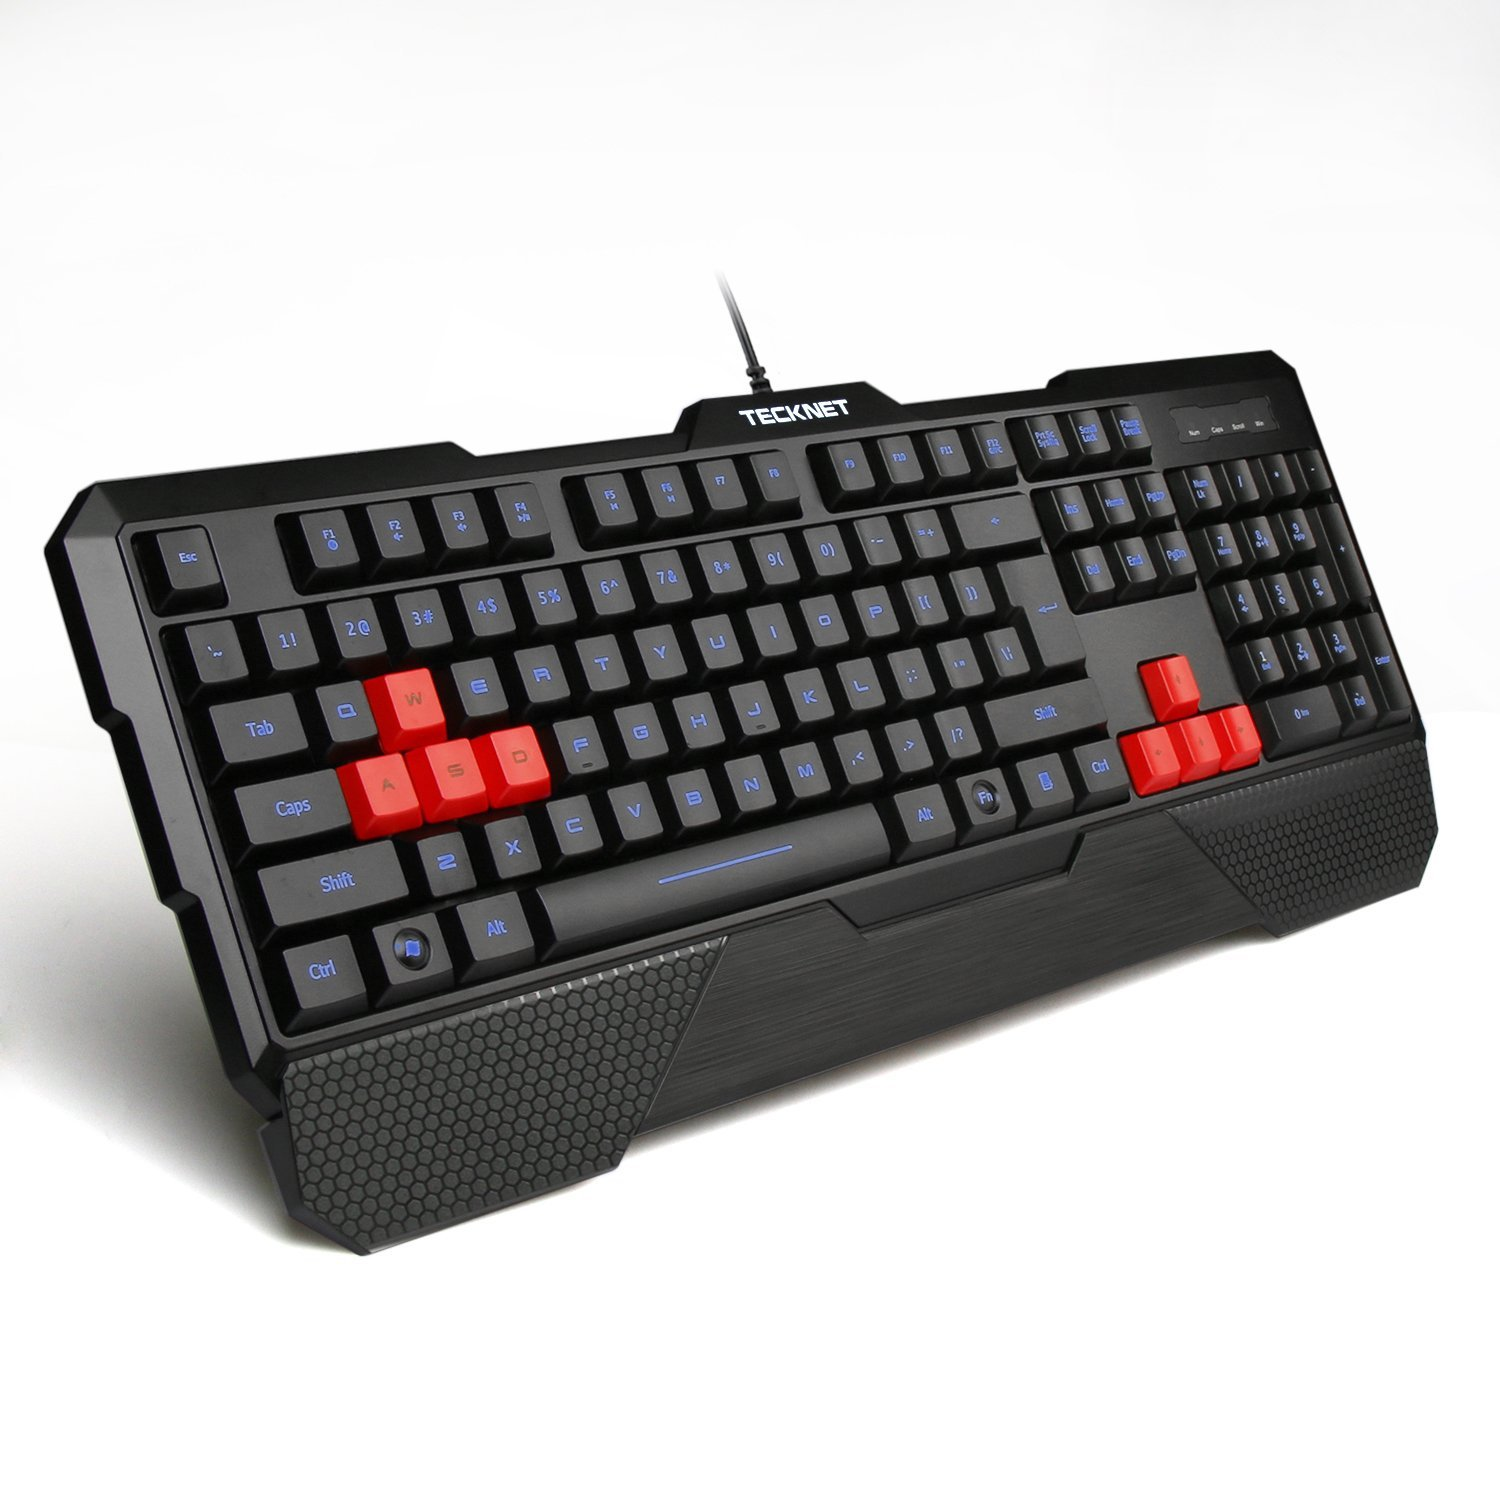 Tecknet Kraken Gaming Keyboard